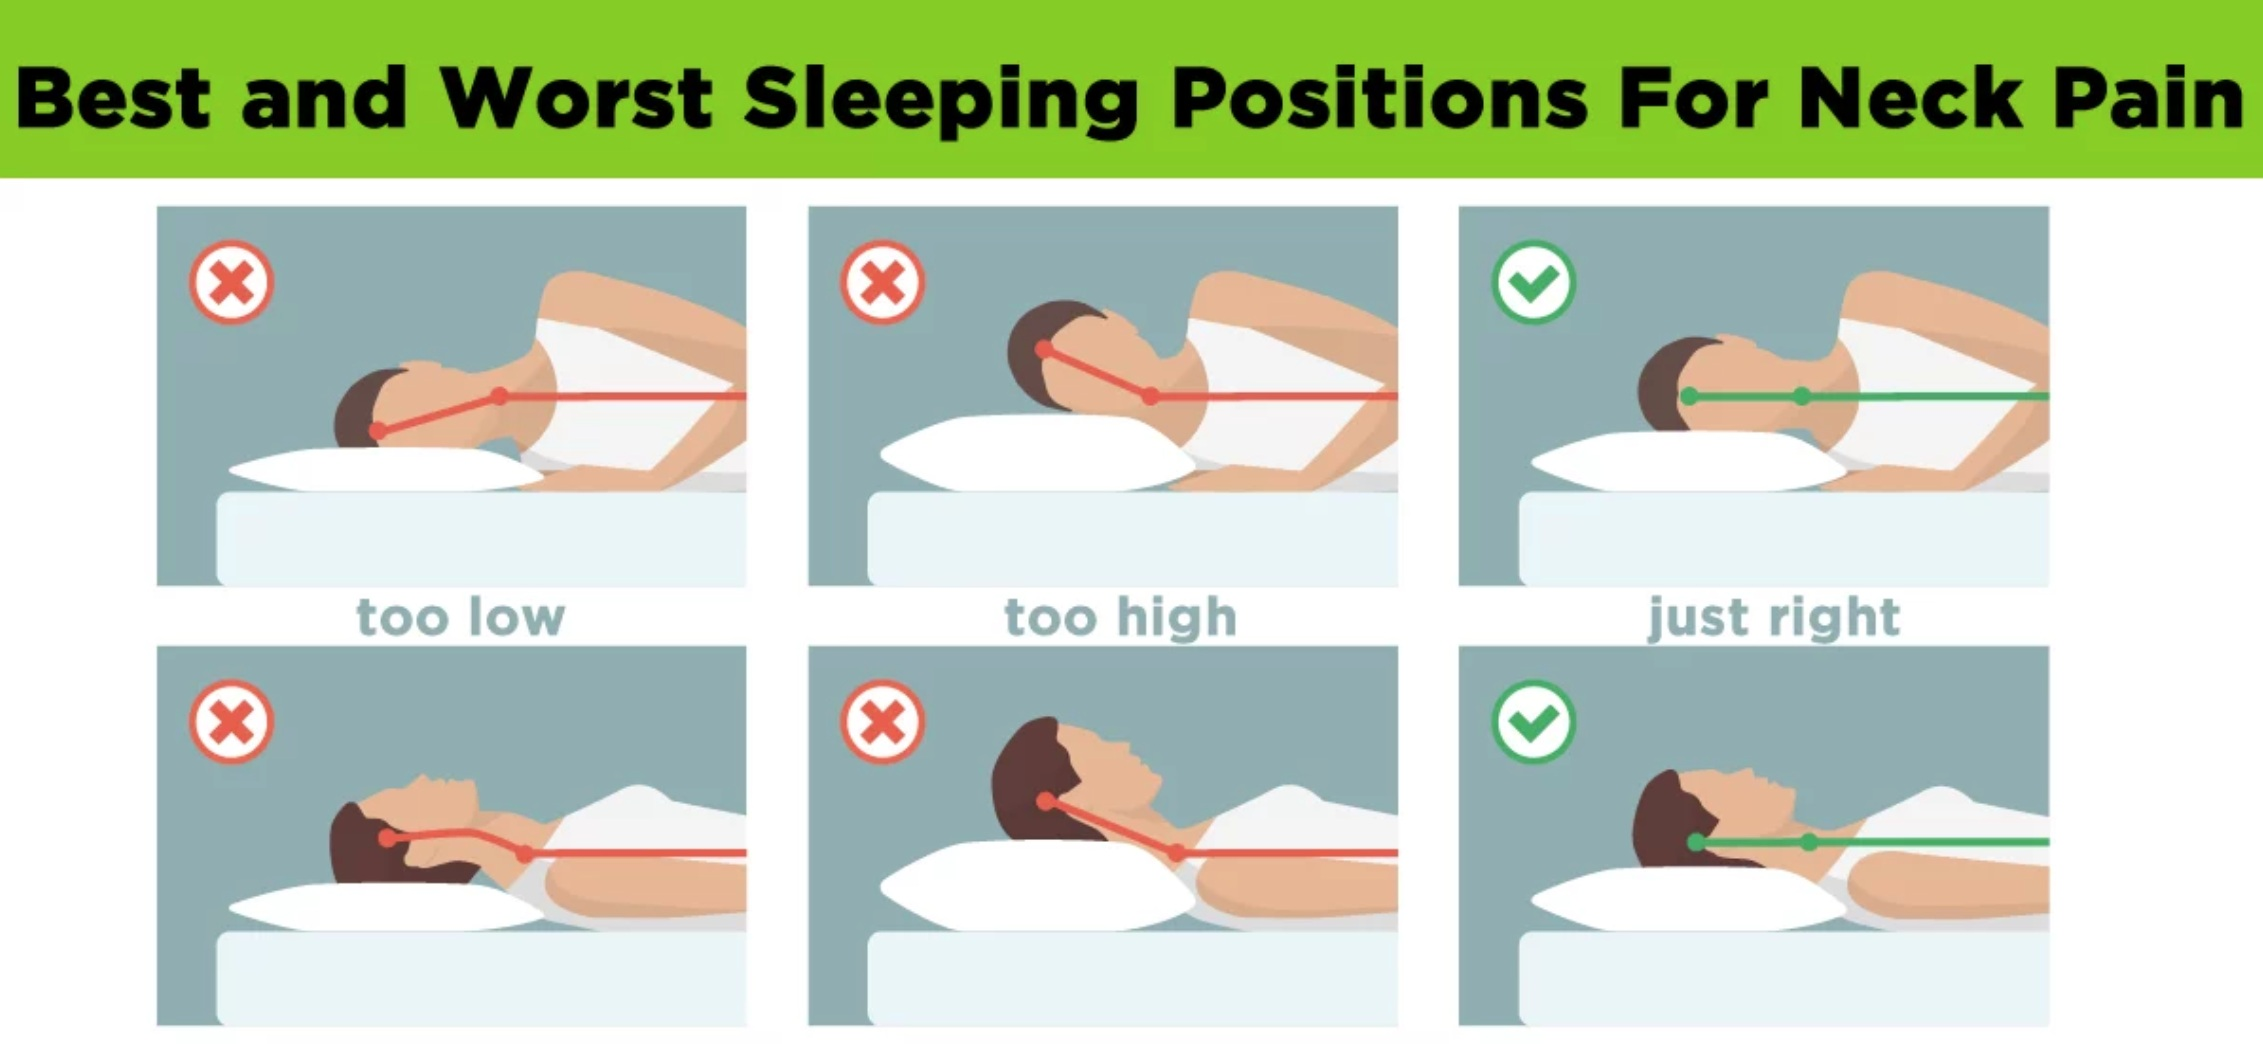 Sleeping+in+a+good+position+with+the+right+pillow+can+help+fix+neck+pain+and+stiffness+from+sleeping